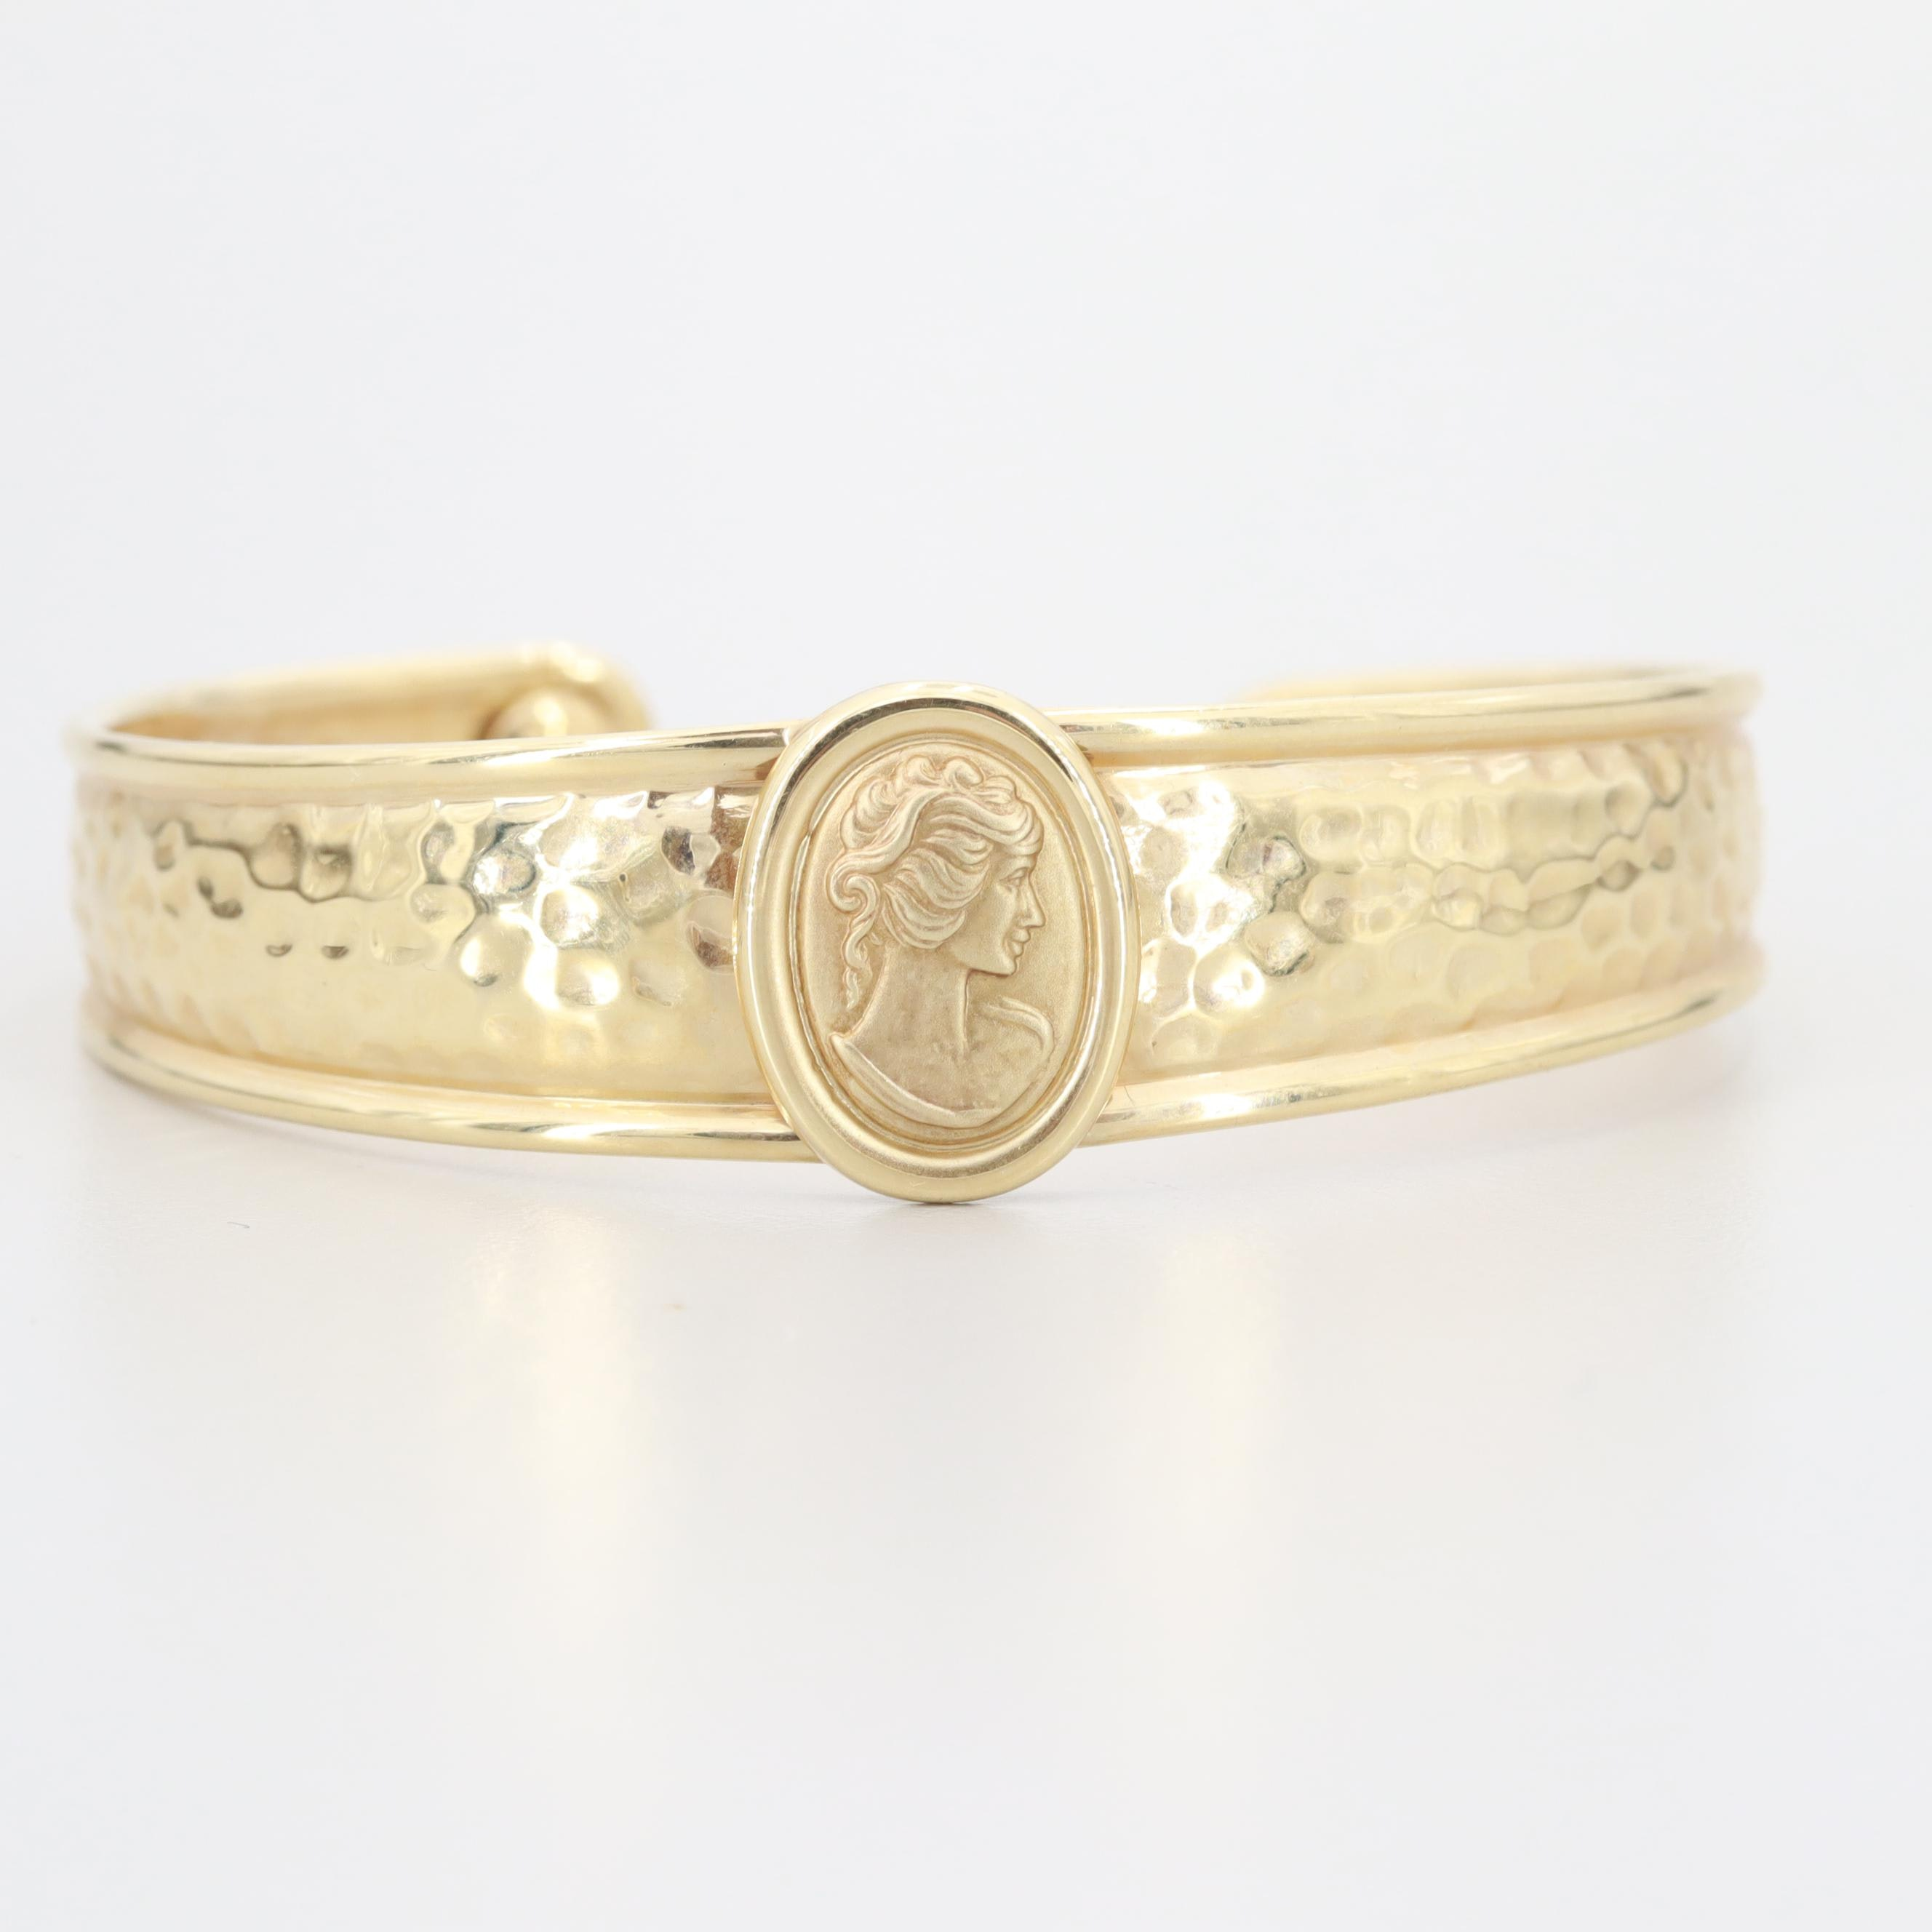 Vior Italy 14K Yellow Gold Cameo Style Cuff Bracelet